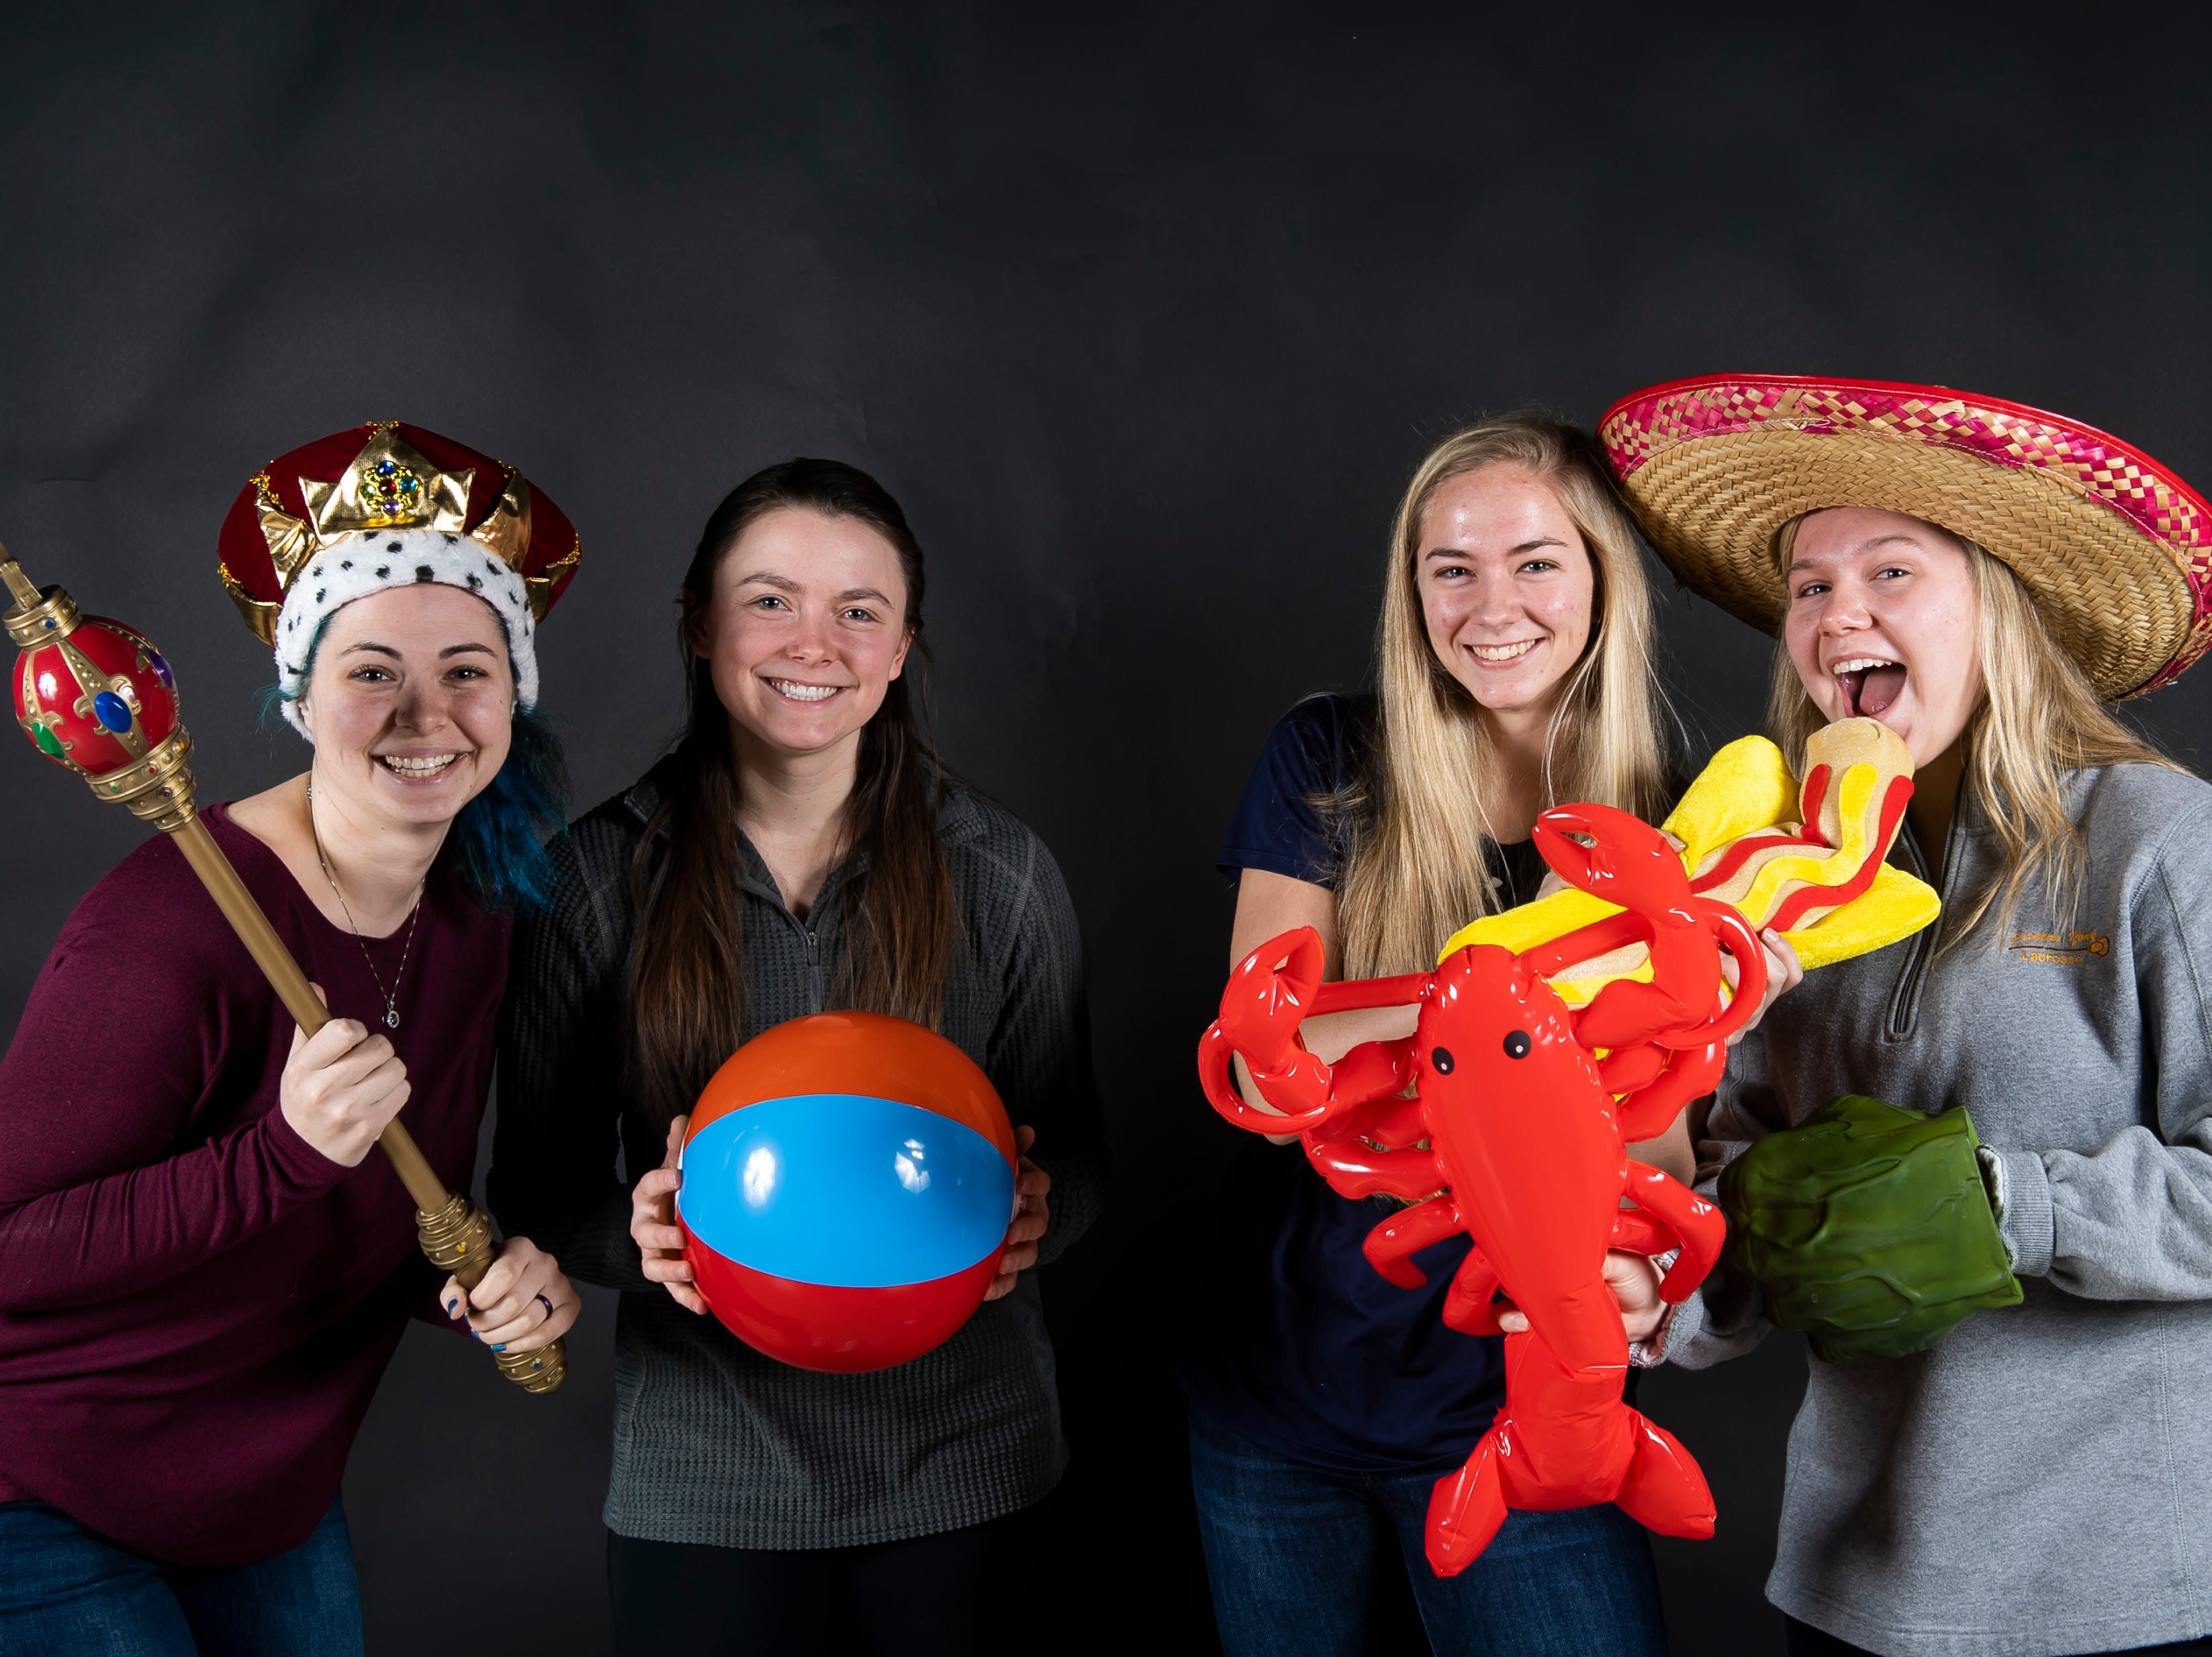 The Eastern York girls lacrosse team strike a pose with in the GameTimePA photo booth during spring sports media day in York Sunday, March 10, 2019.